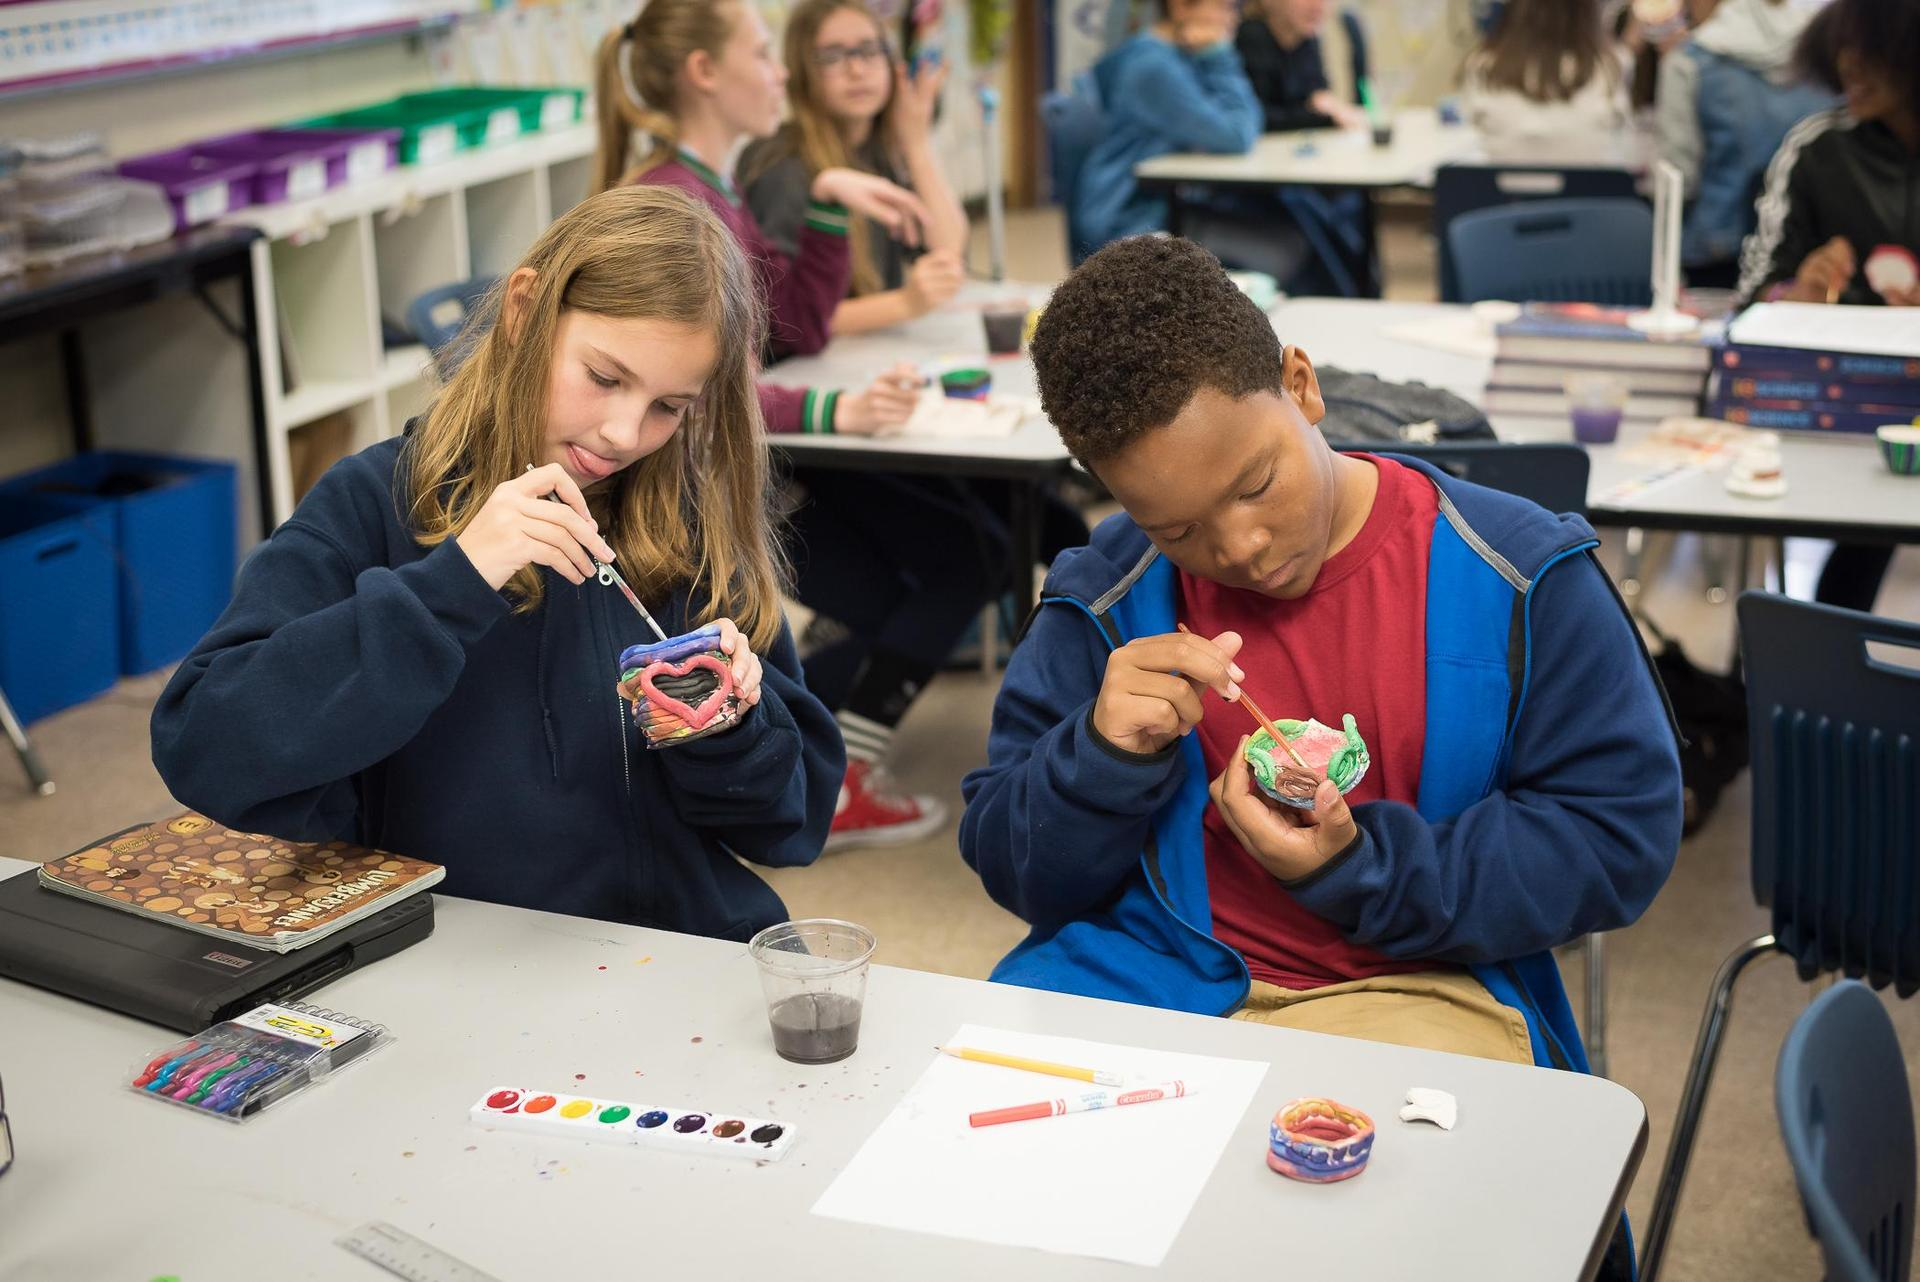 Students in art class